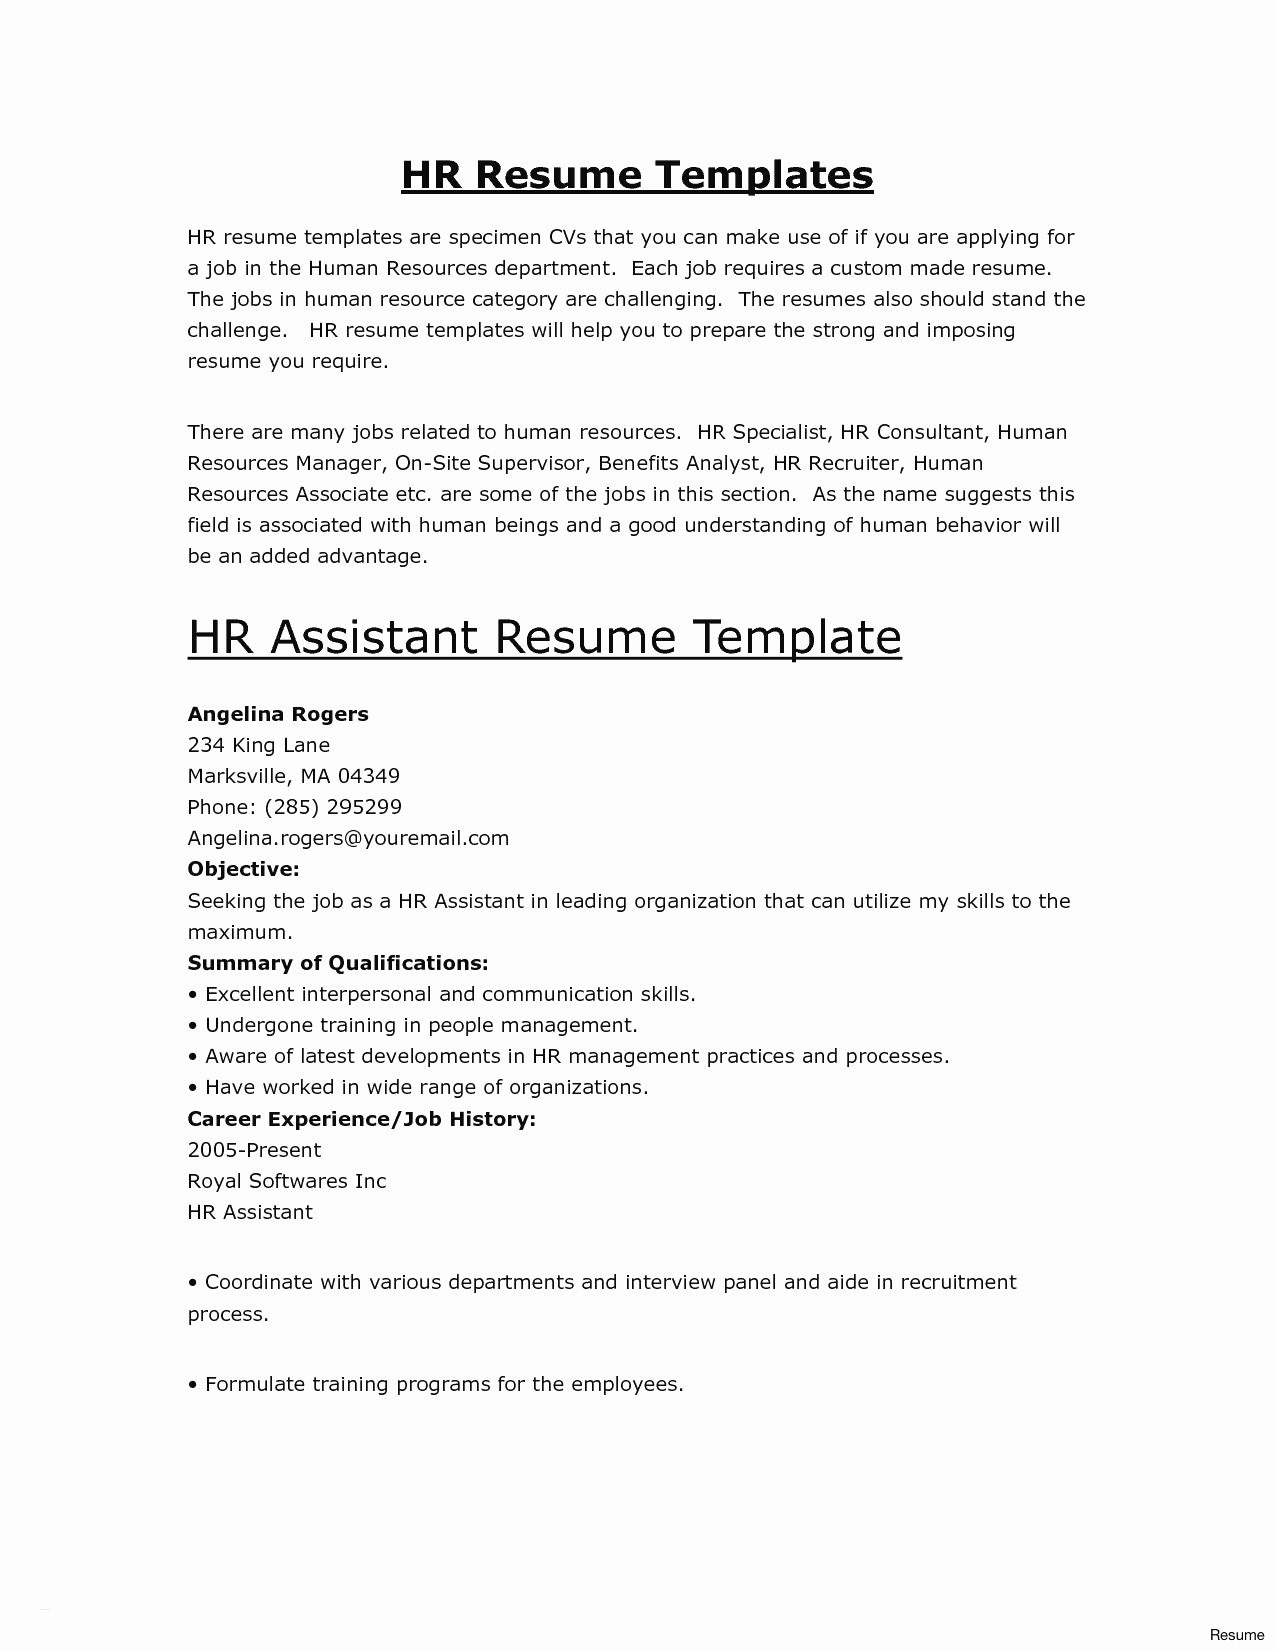 Resume Sites for Recruiters - Download Luxury Word 2013 Resume Templates